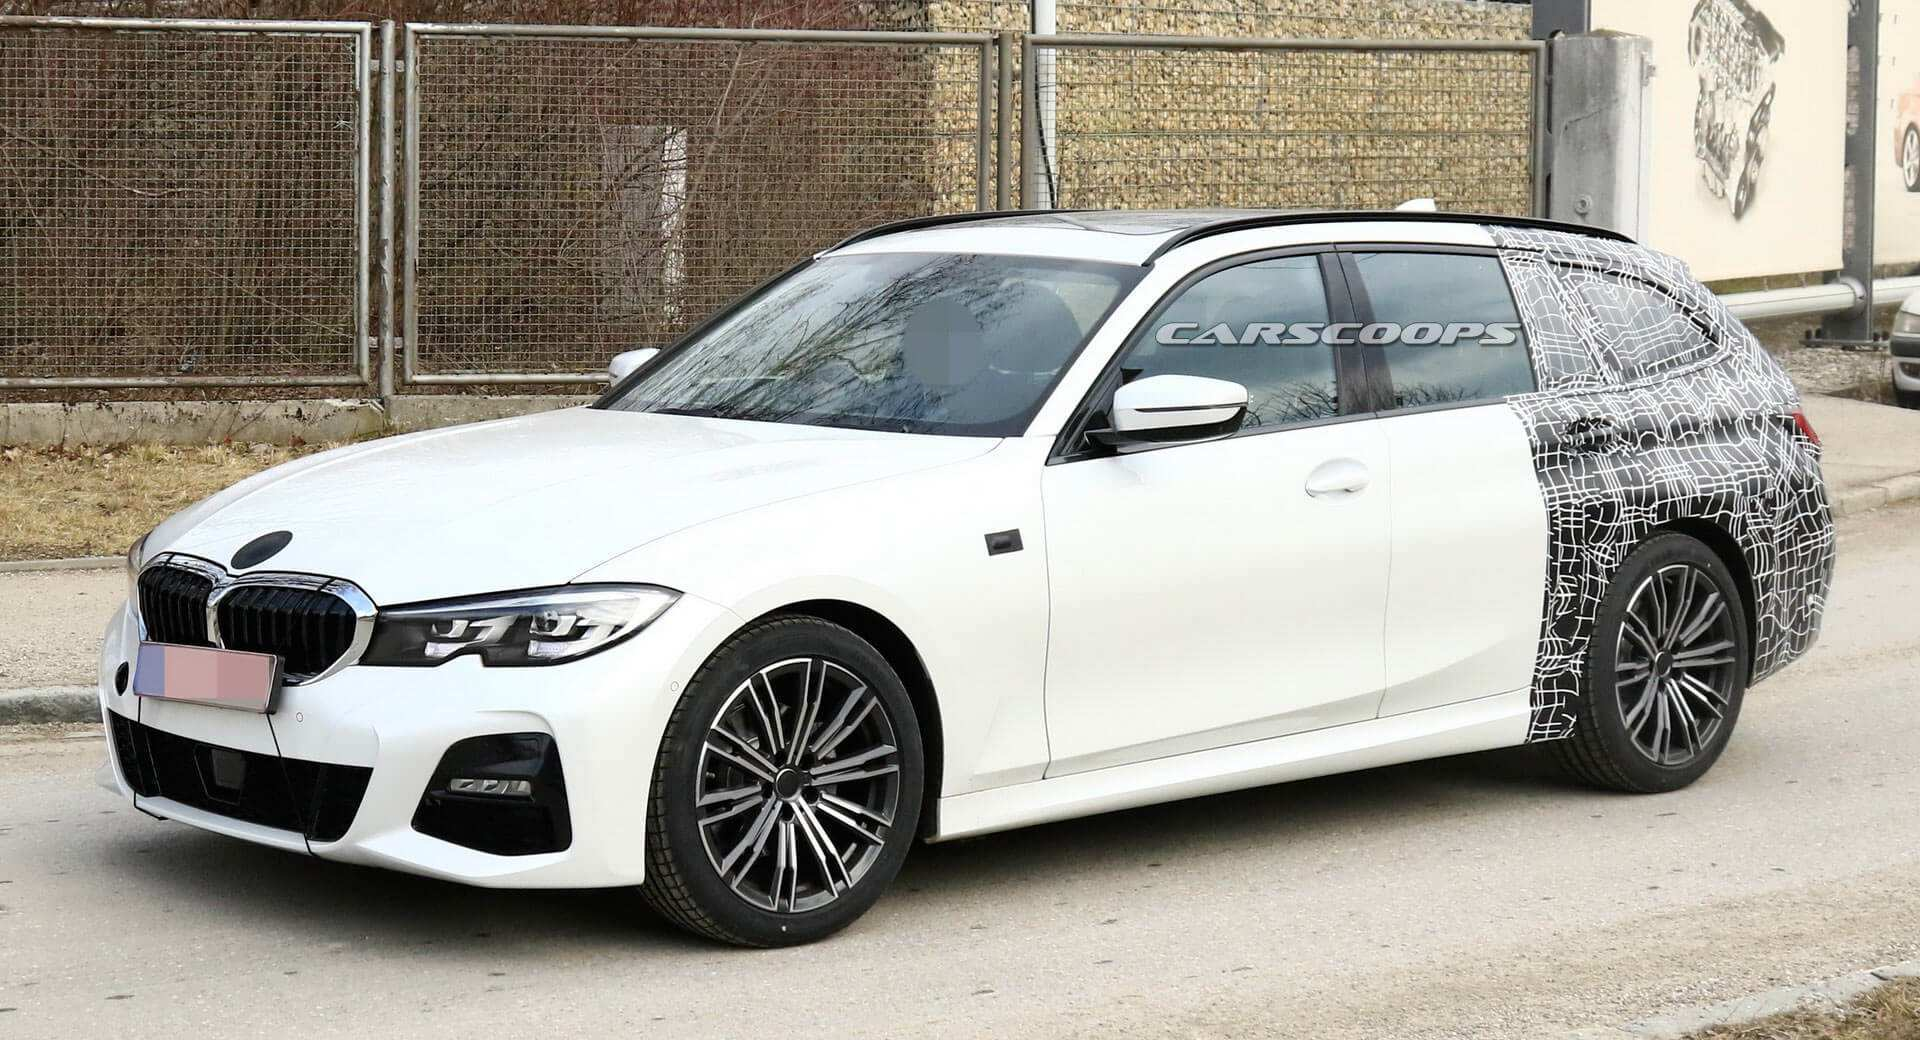 45 New New BMW 3 Series Touring 2020 Prices for New BMW 3 Series Touring 2020